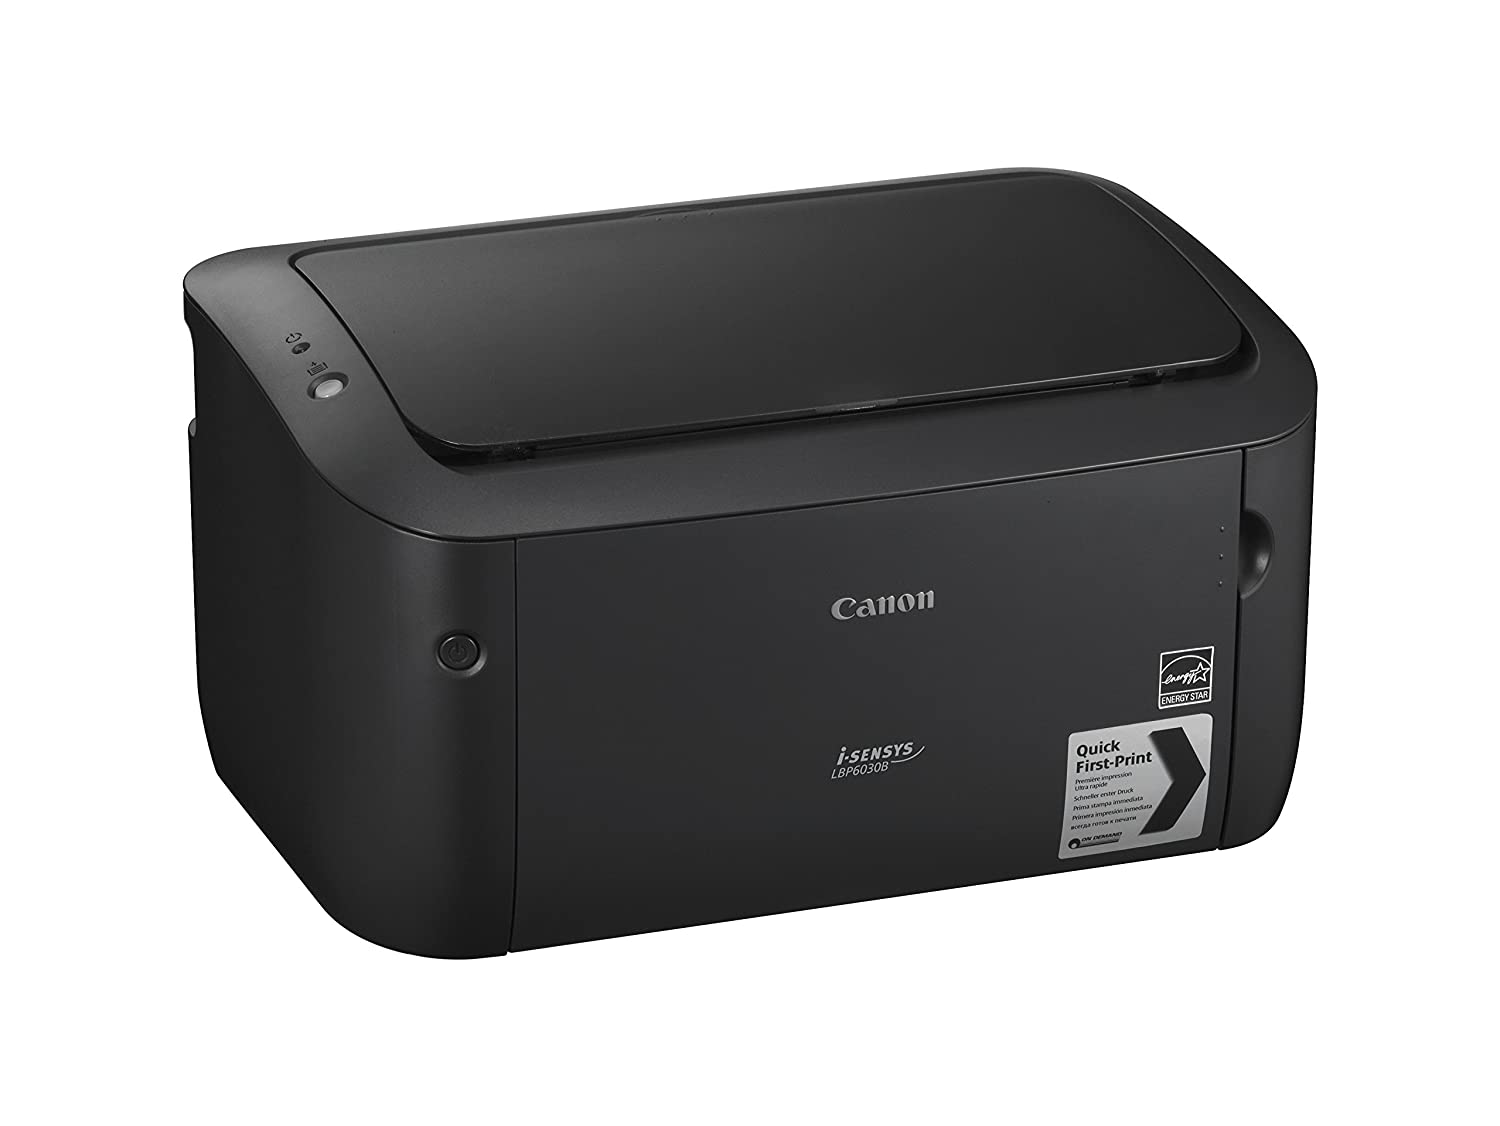 pilote imprimante canon lbp6030b pour windows 7